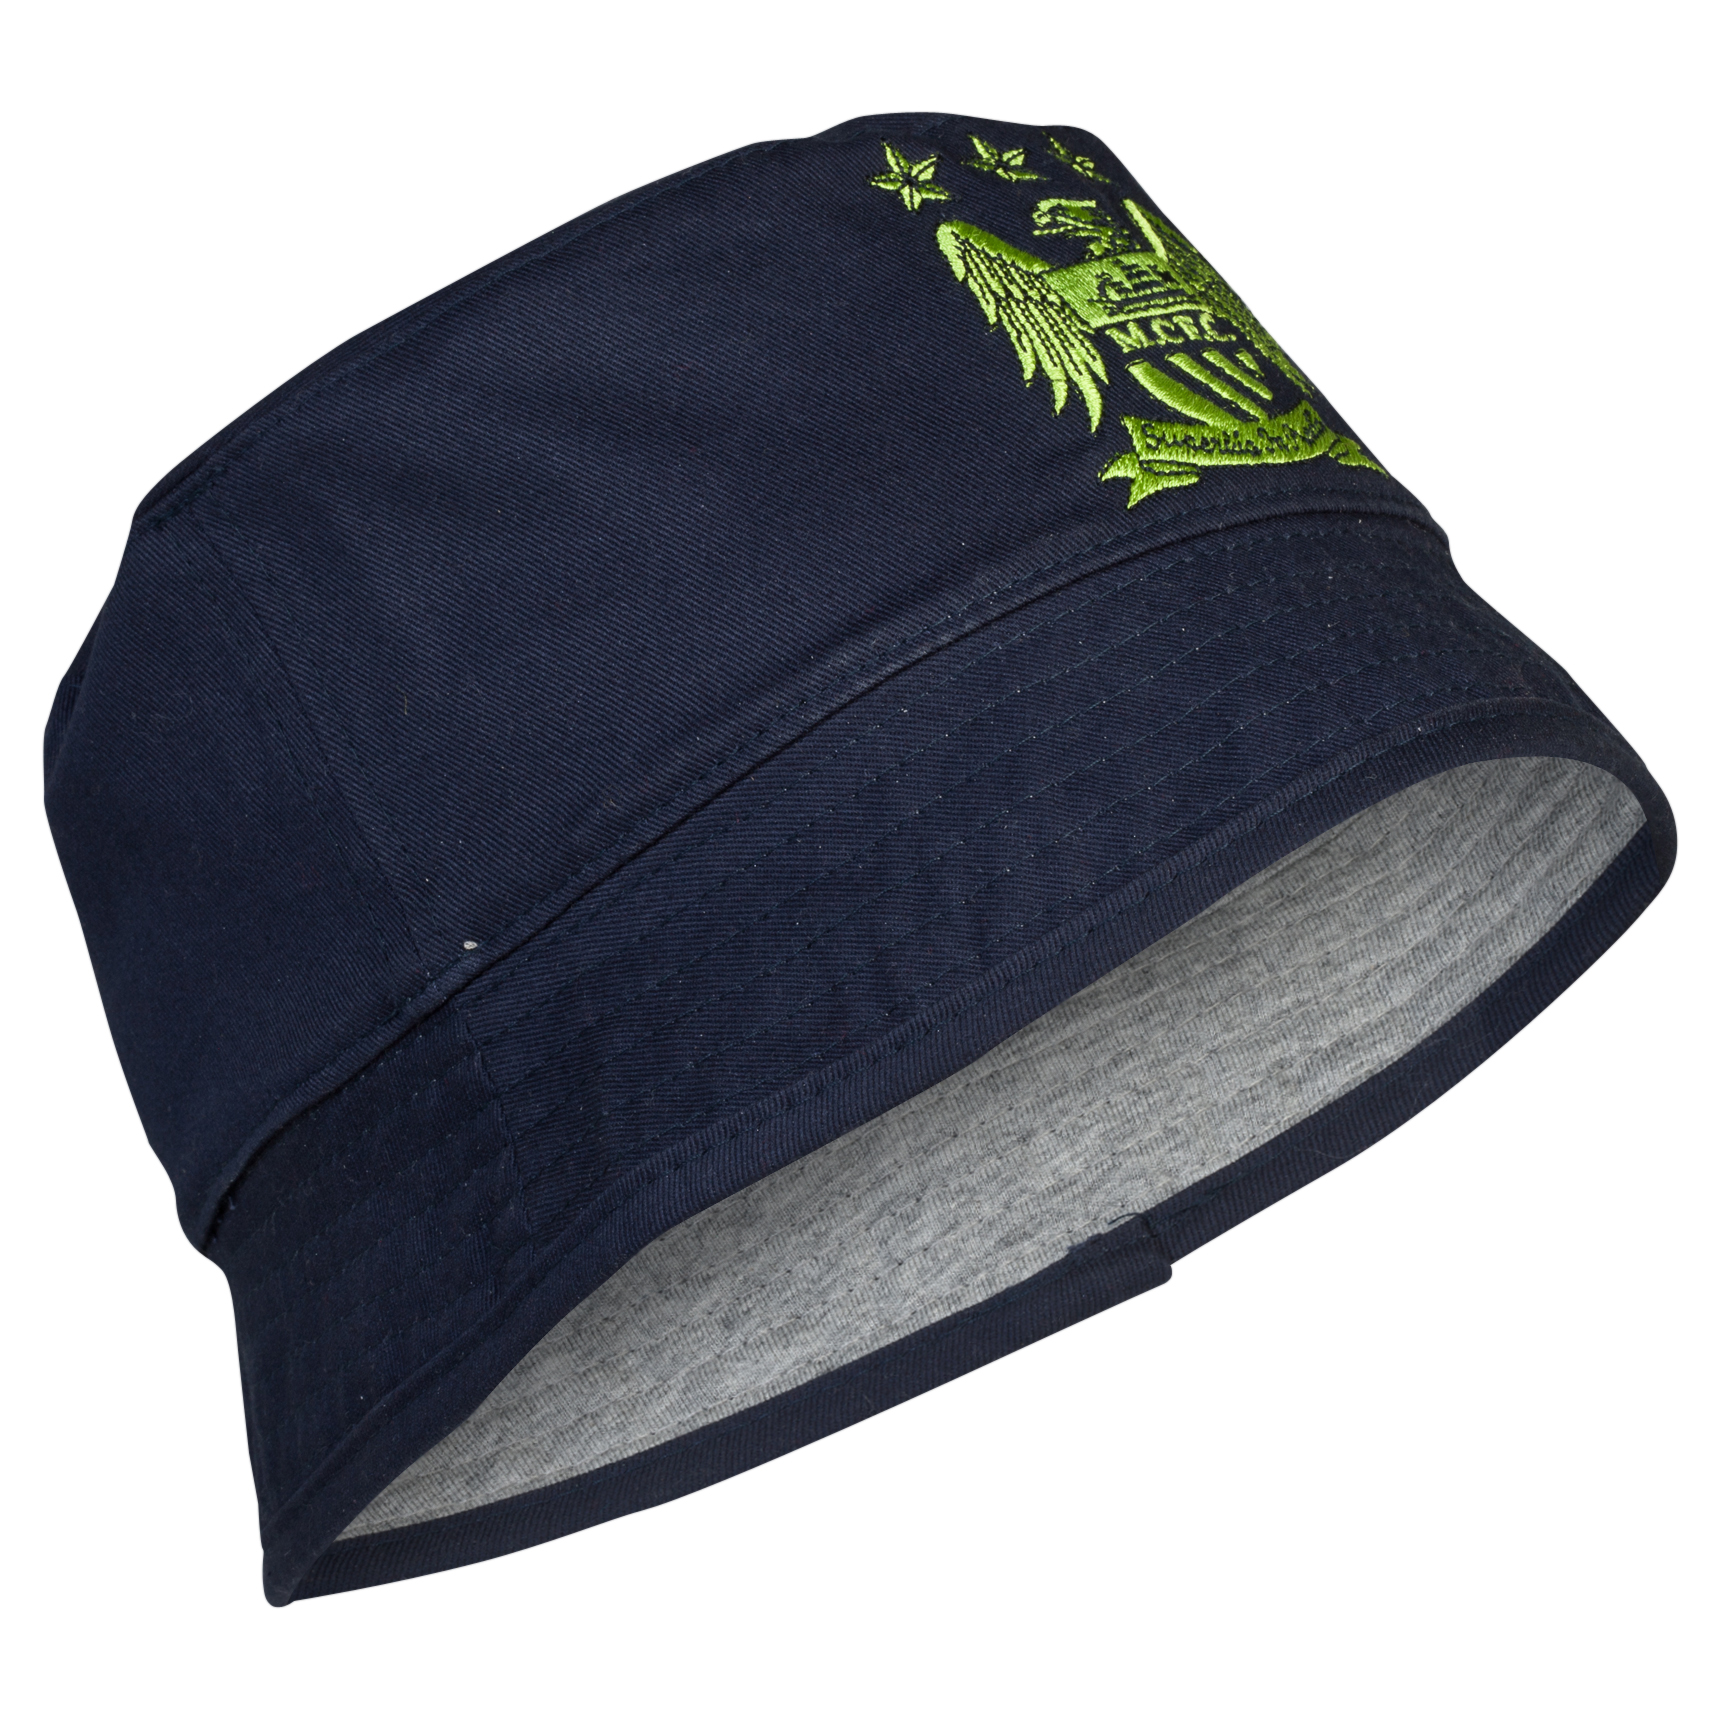 Manchester City Essential Shade Bucket Hat - Navy/Sky